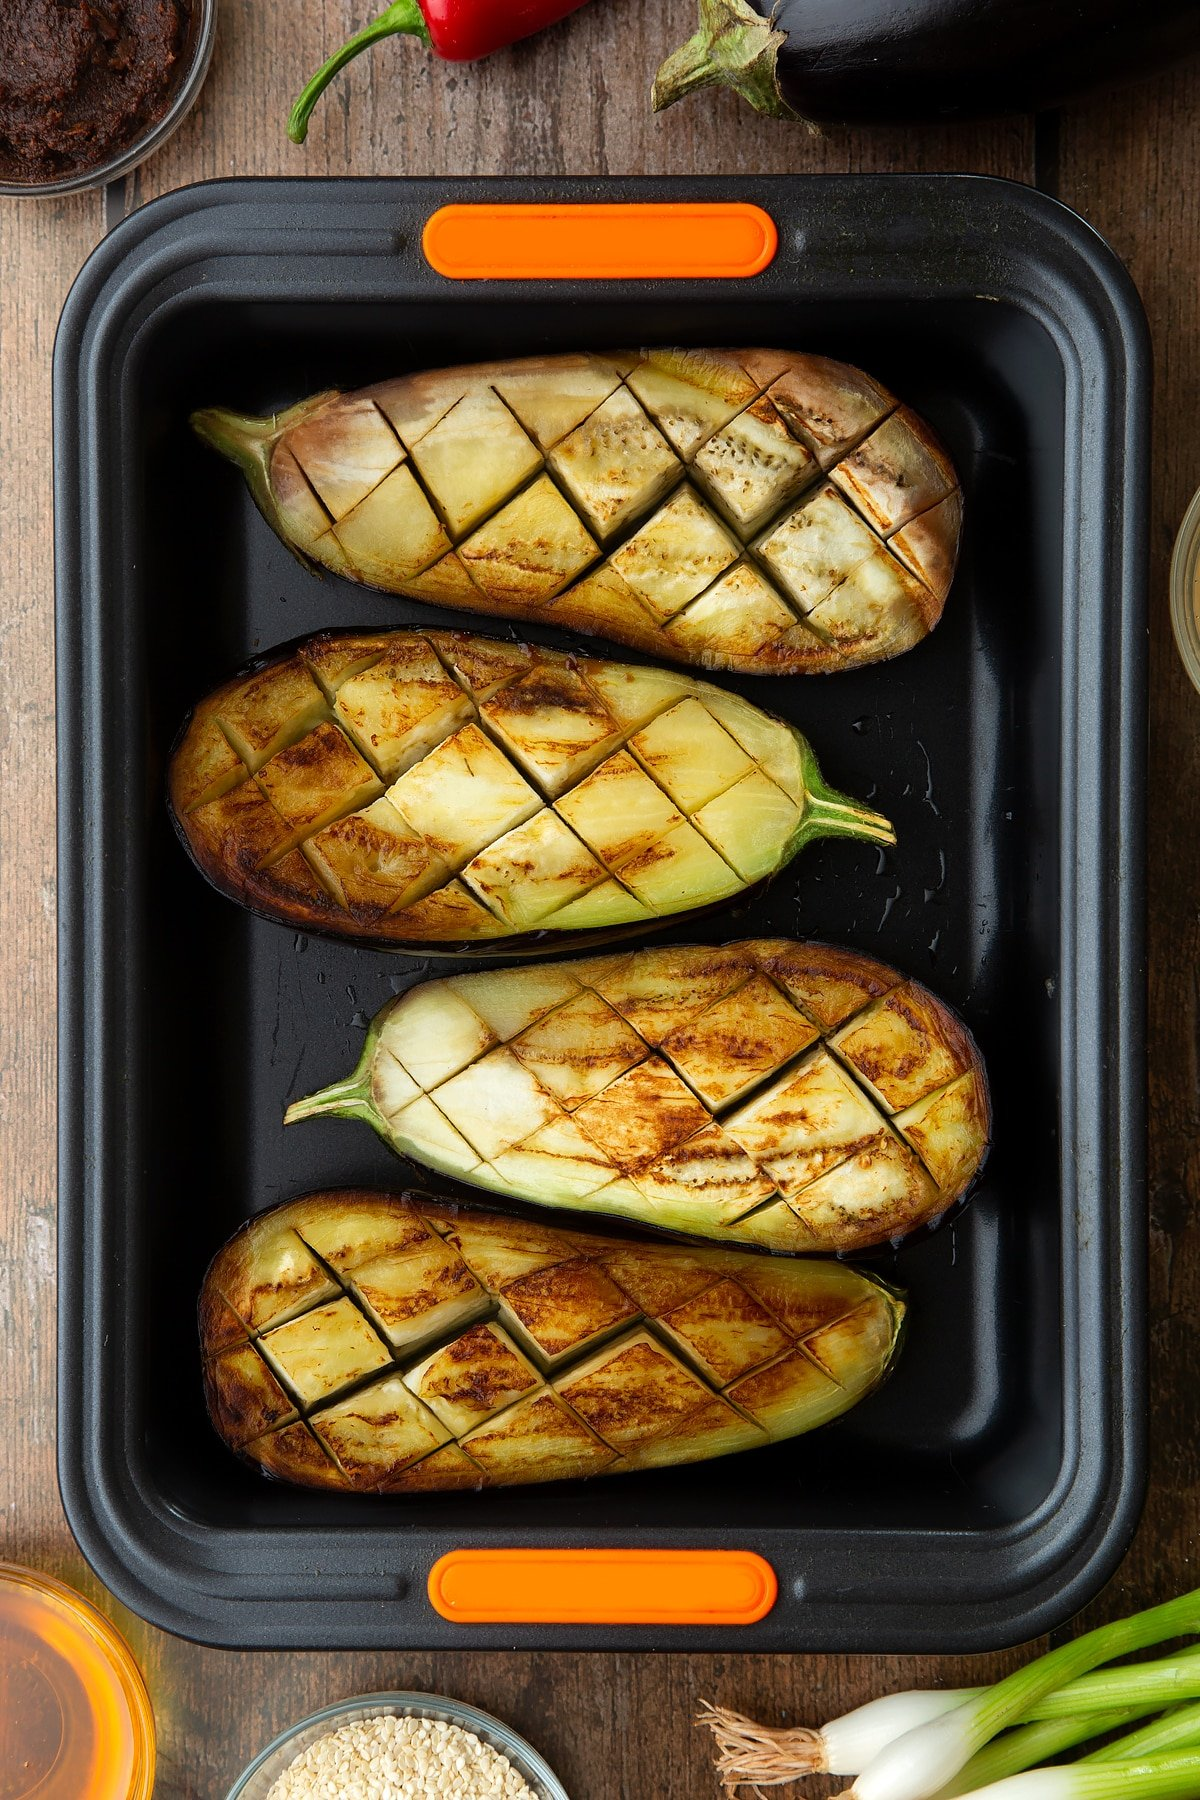 Scored and fried aubergine halves in a tray. Ingredients to make miso aubergine surround the tray.